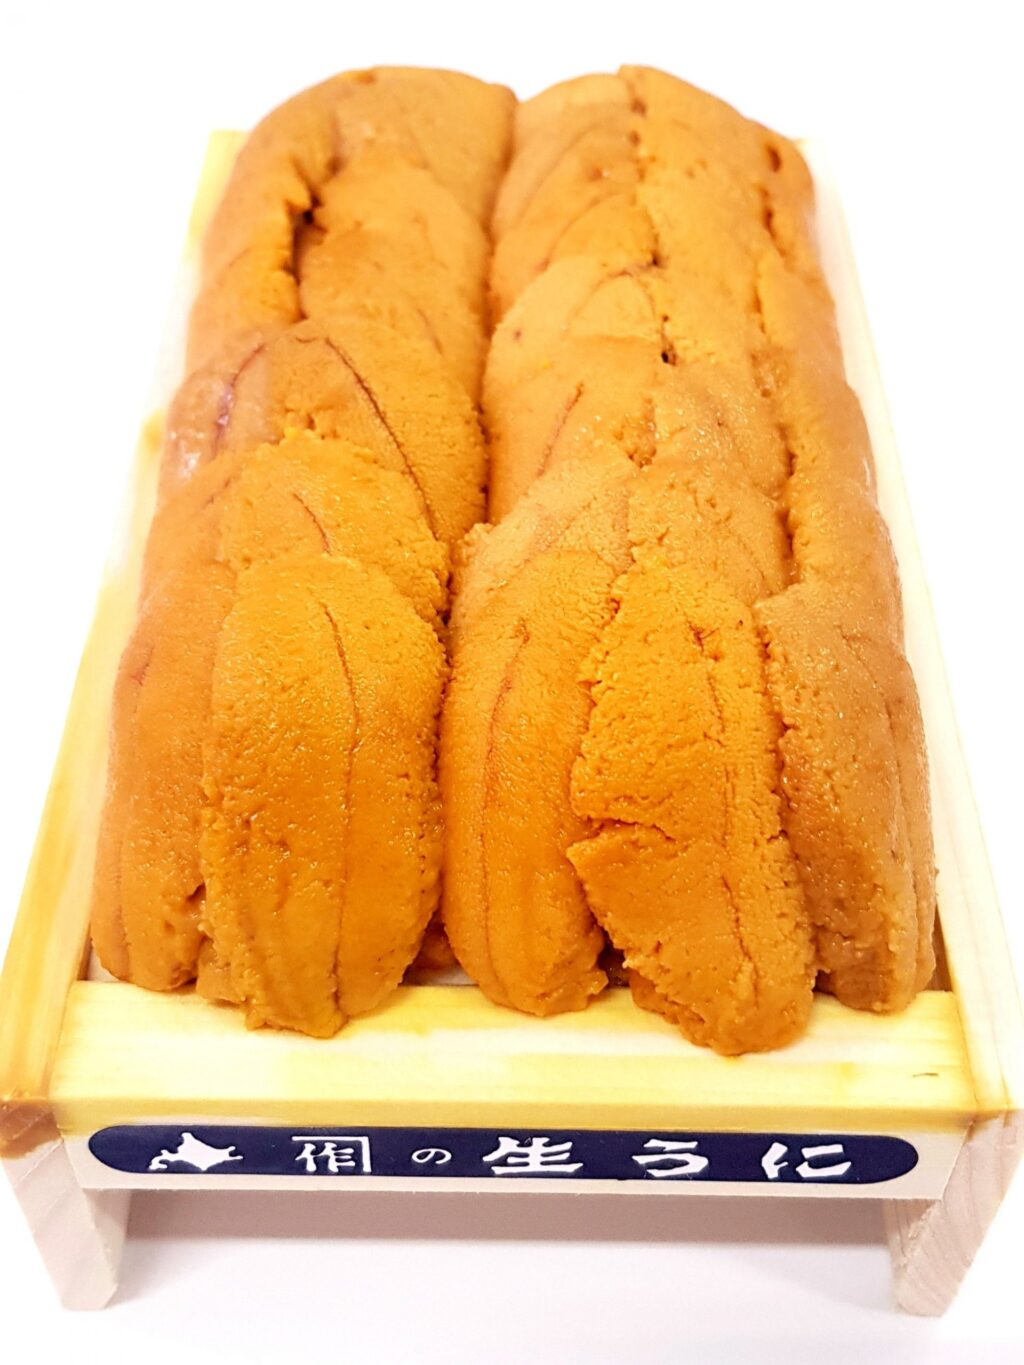 Freshly caught Murasaki uni has a vibrant yellow tint with a soft but creamy texture and a sweet undertones. Its taste is much cleaner and less briny compared to the other unis. This makes it the perfect uni for people new to uni who are keen to experience the taste profile that uni offers.